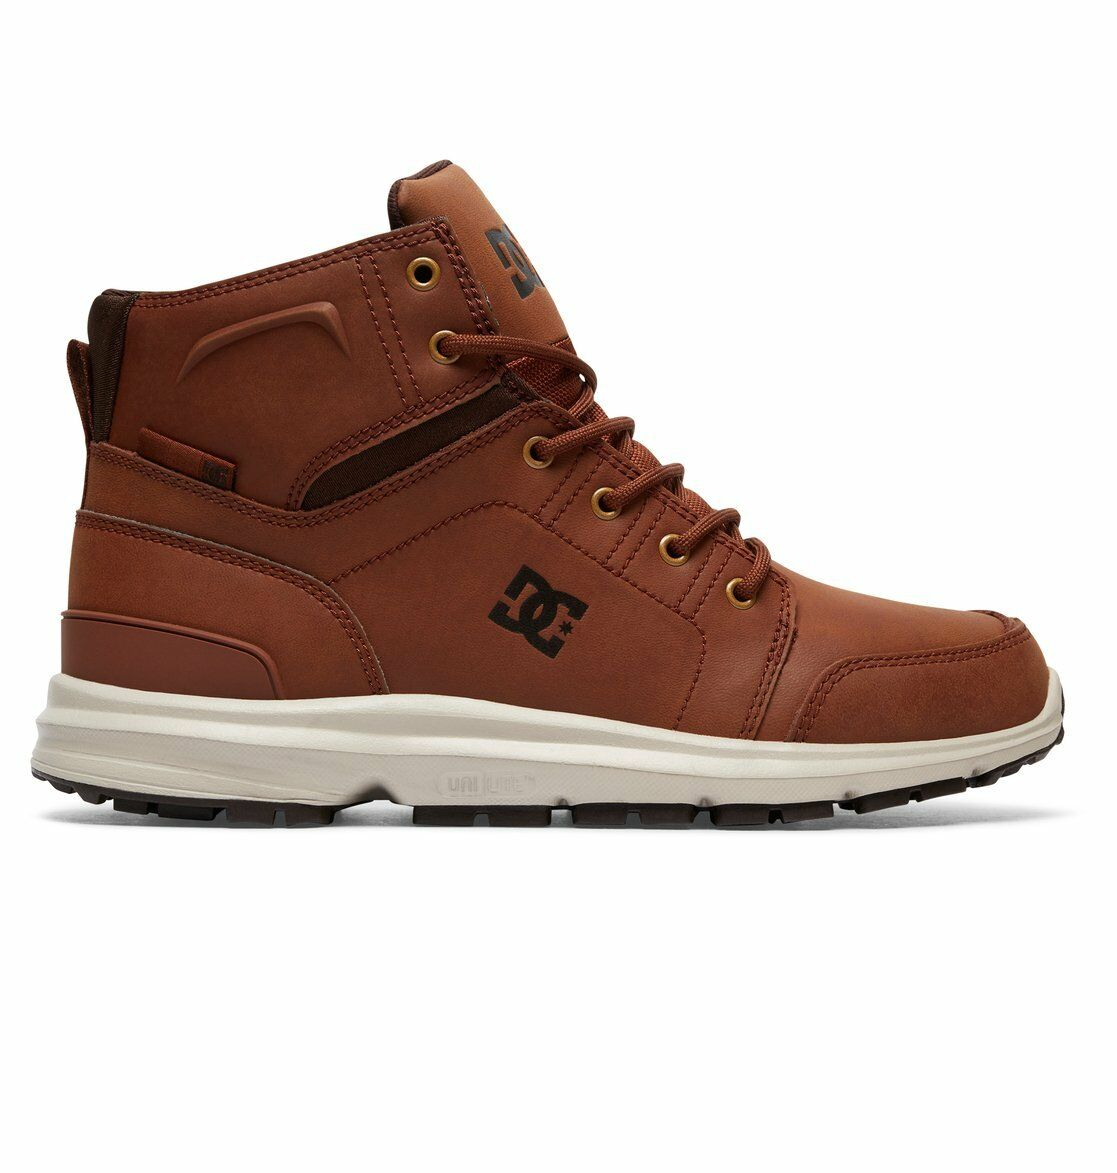 DC SHOES  scarponcino scarponcino  Torstein brown/chocolate 9a9ec5